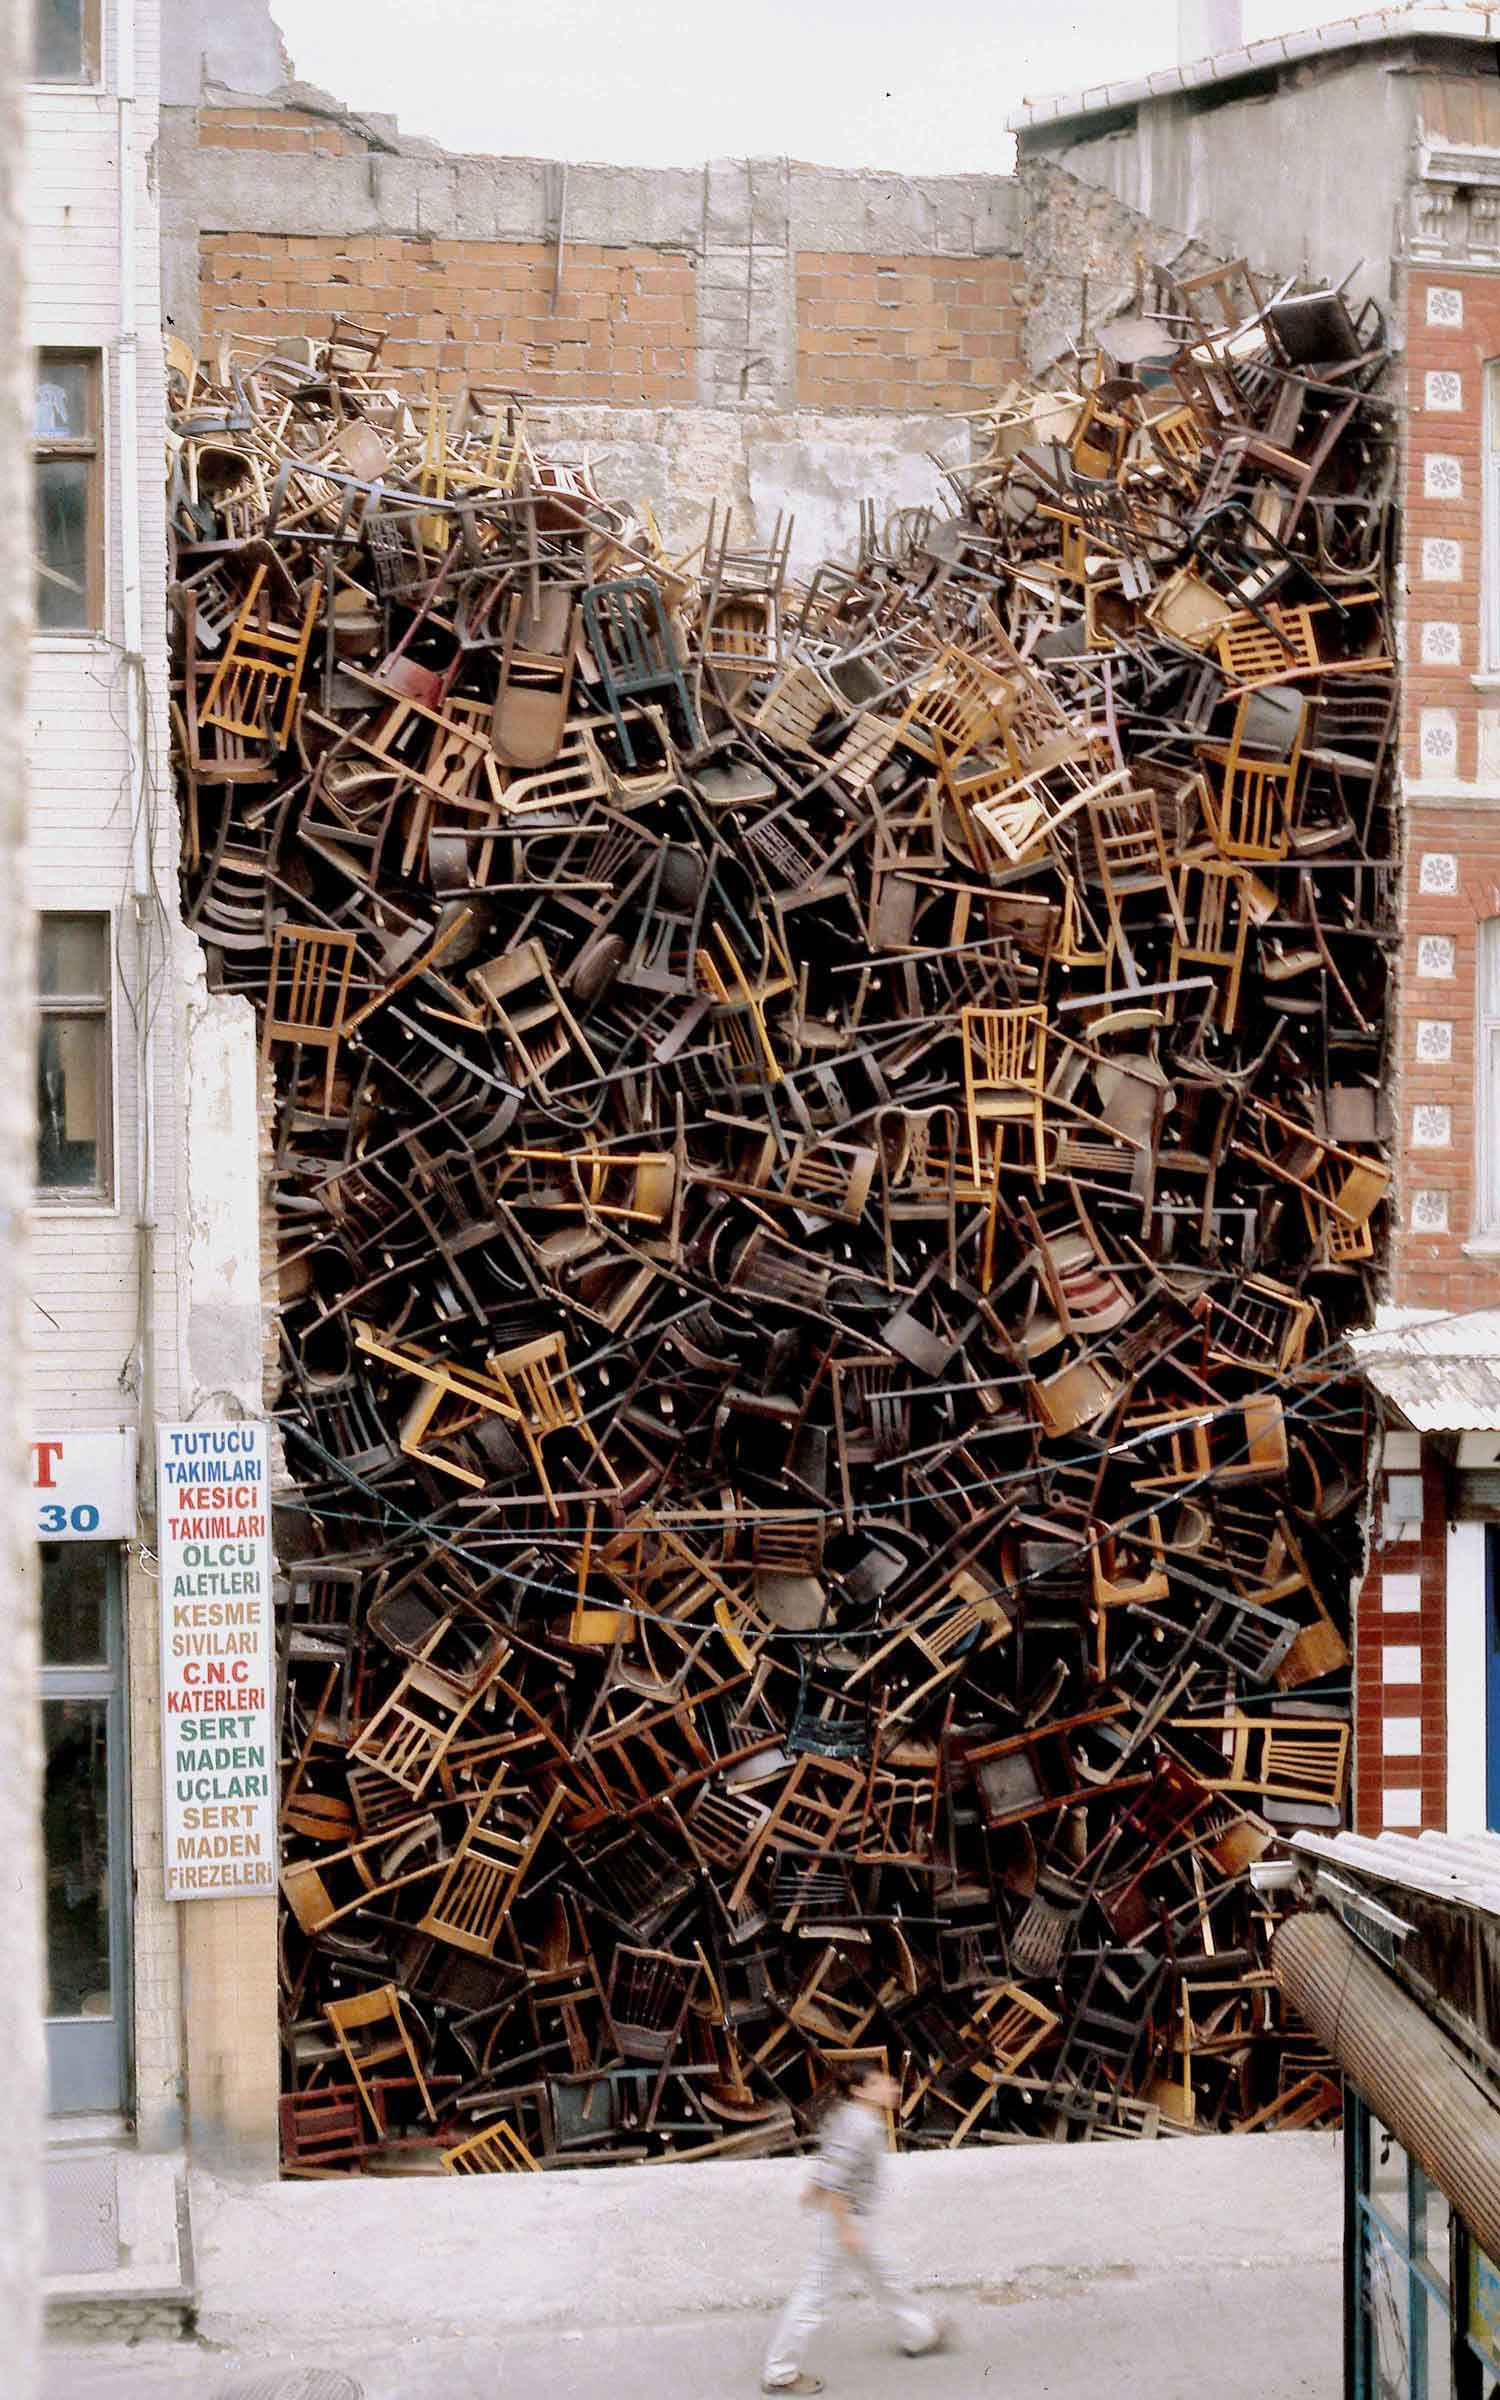 Stories On Design Chair Installations Yellowtrace In 2020 Art Chair Doris Salcedo Public Art